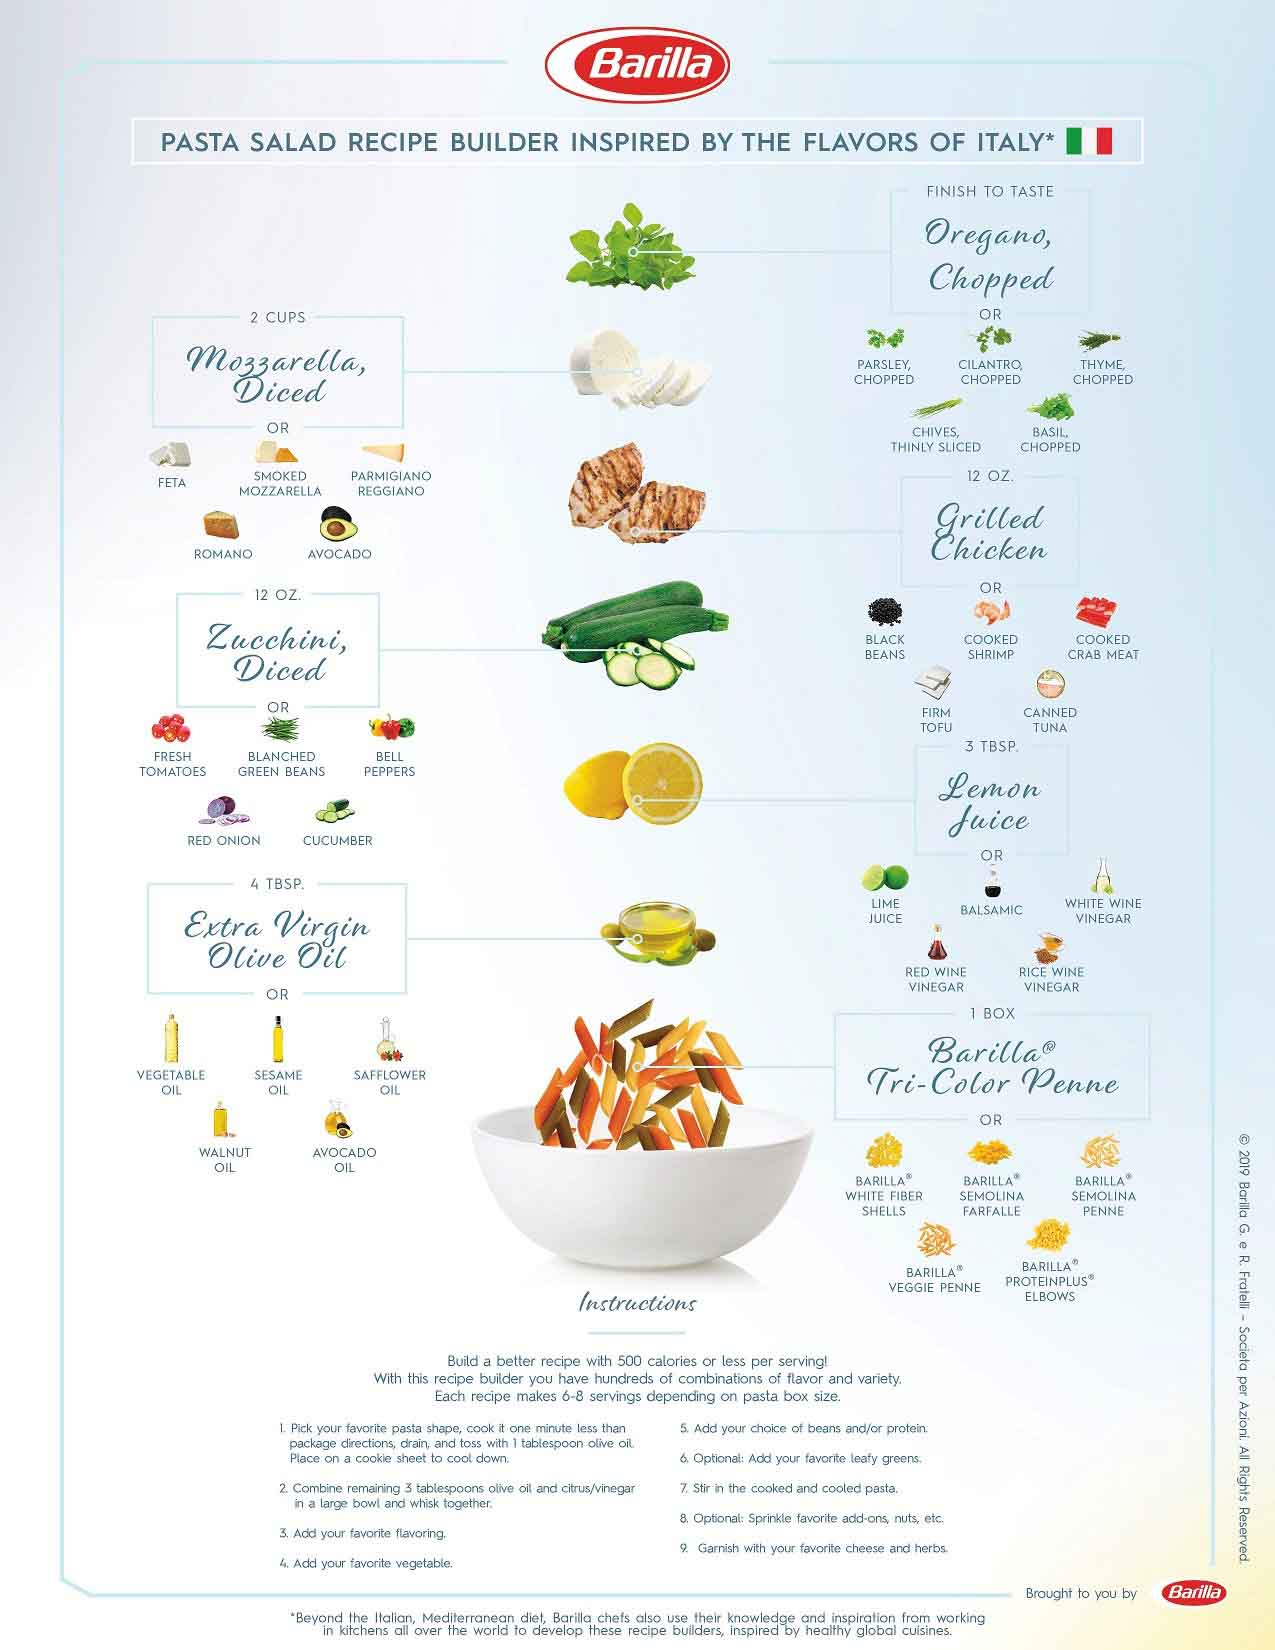 Pasta Salad Recipe Builder inspired by the flavors of Italy